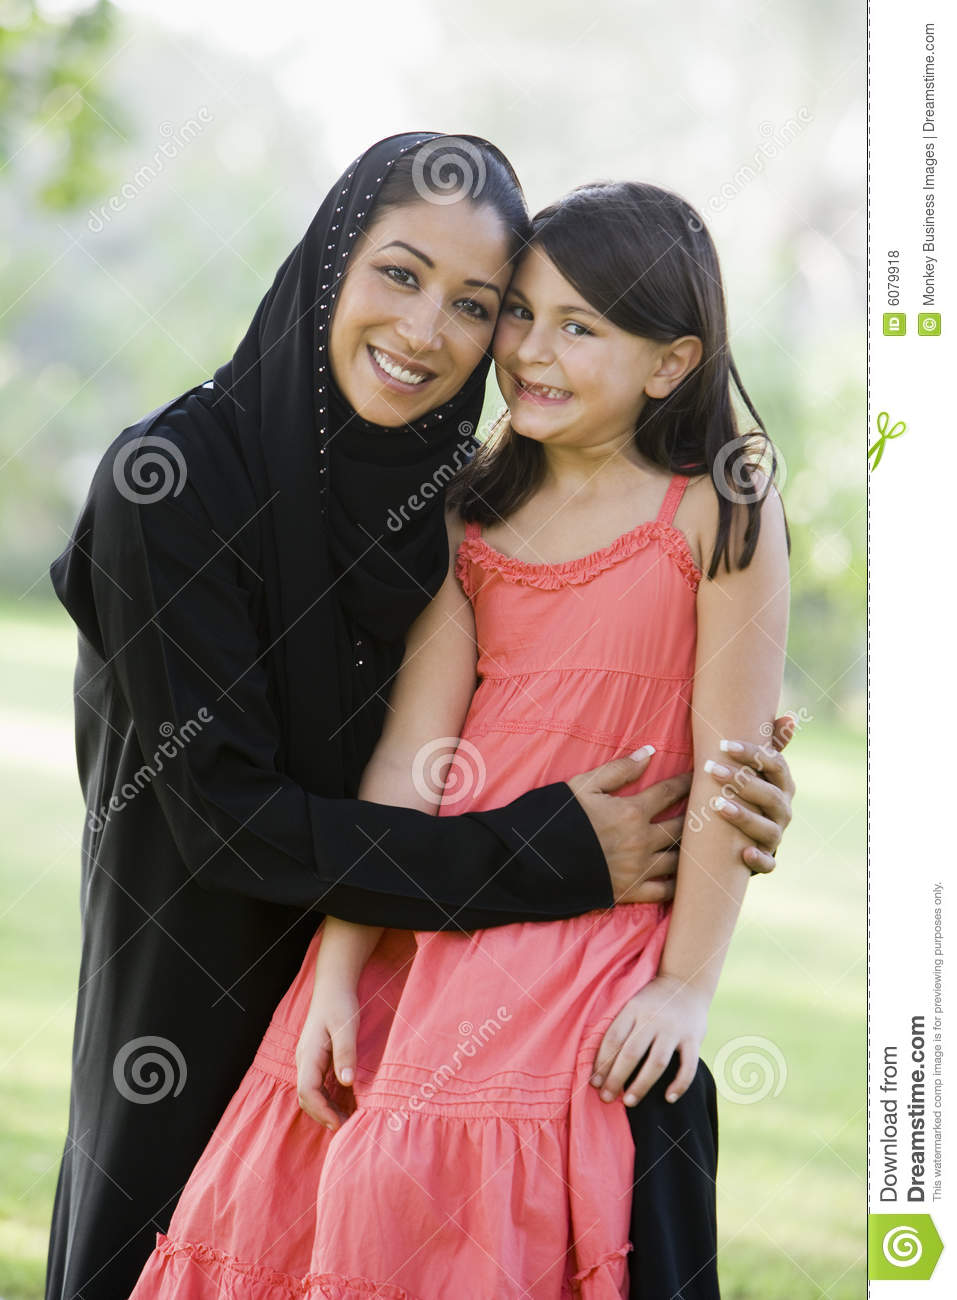 model middle eastern single women Meet middle eastern men meet interesting middle eastern men worldwide on lovehabibi - the most popular place on the web for finding a handsome husband or boyfriend from middle east.